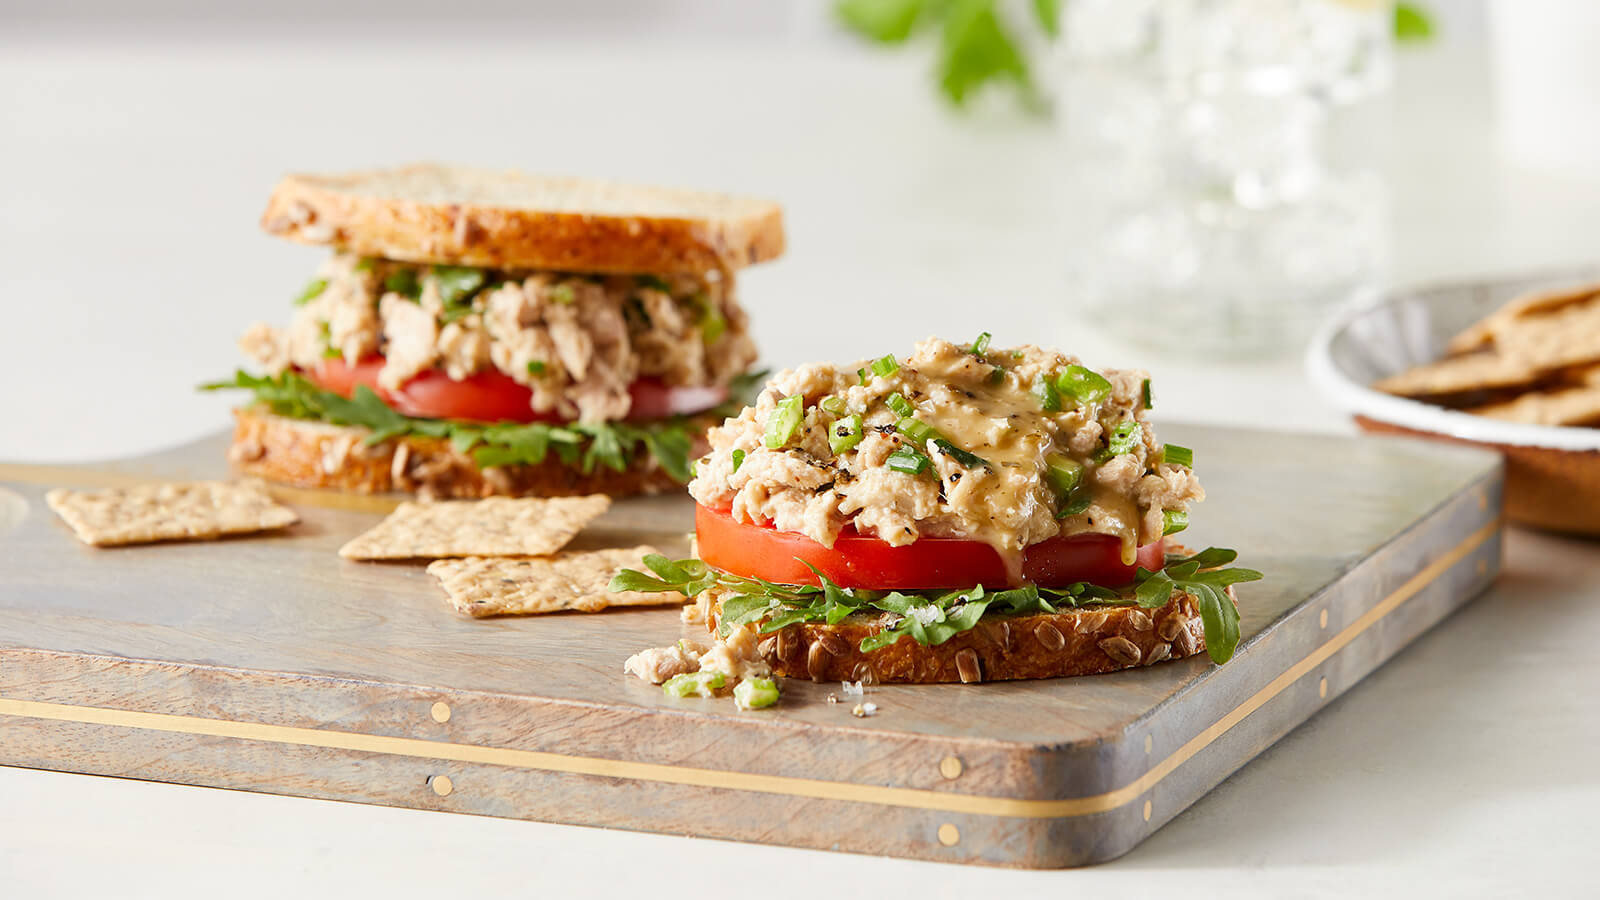 Green Goddess Tuna Salad